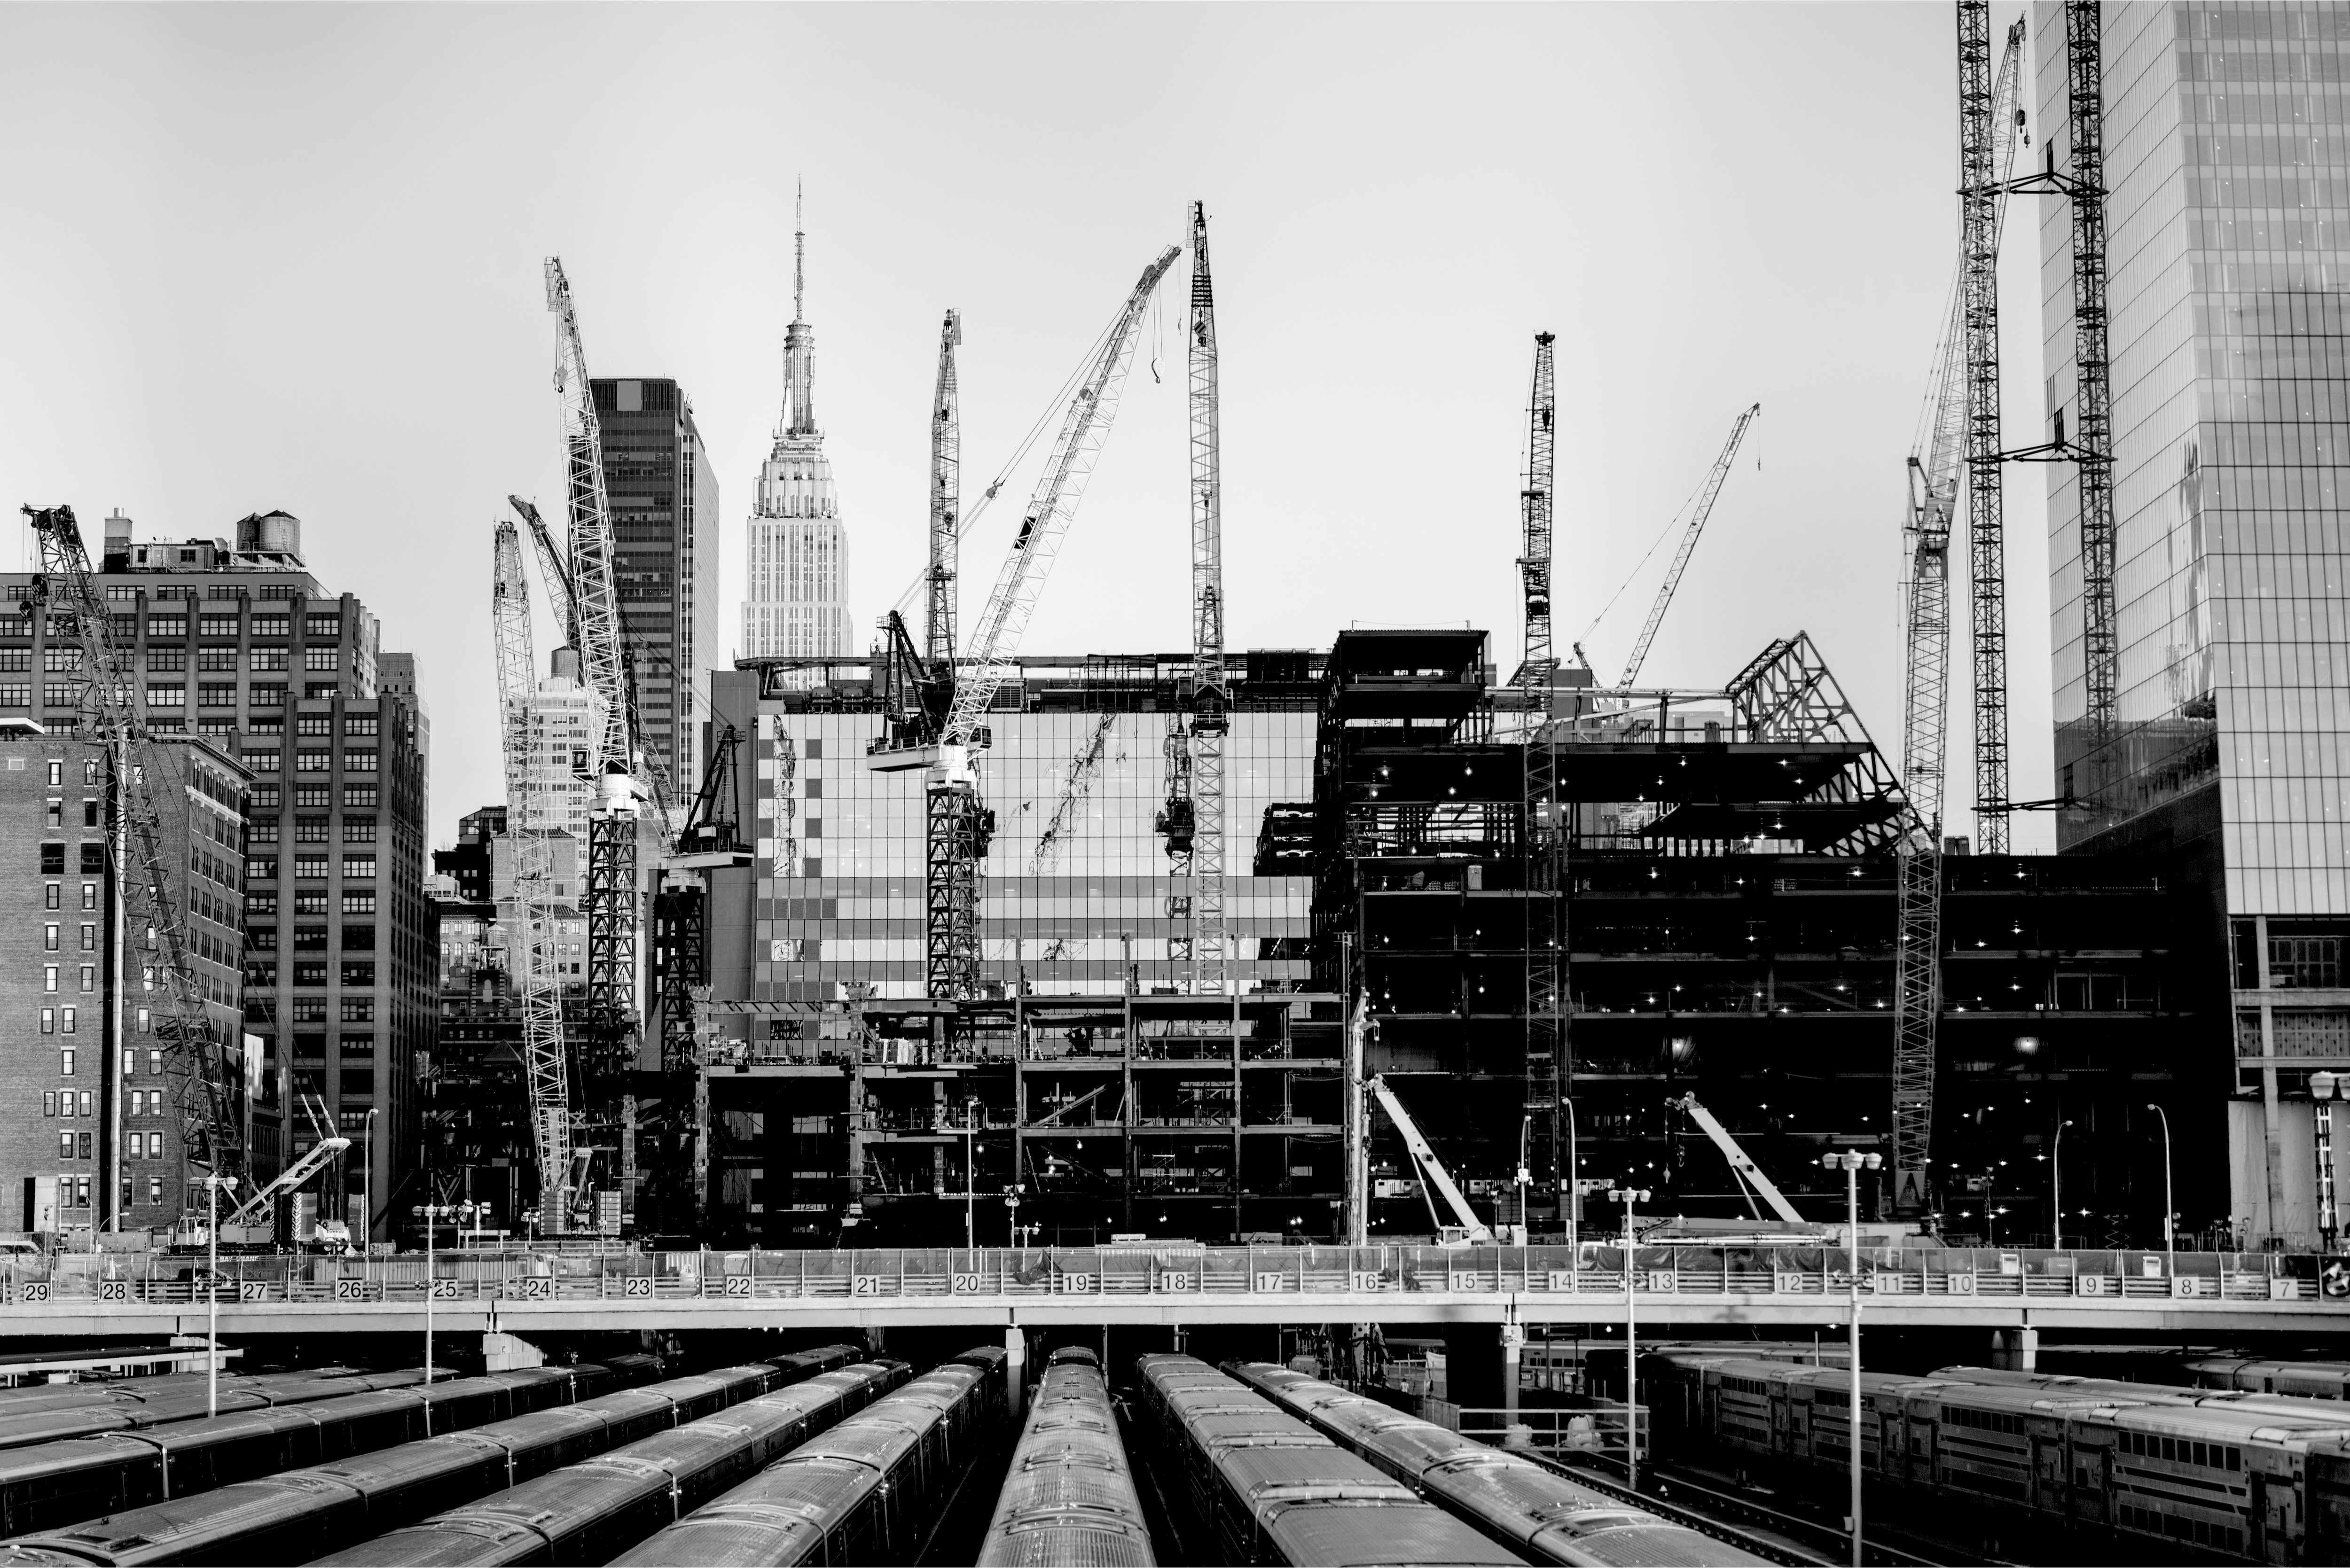 buildings under construction and cranes in New York City